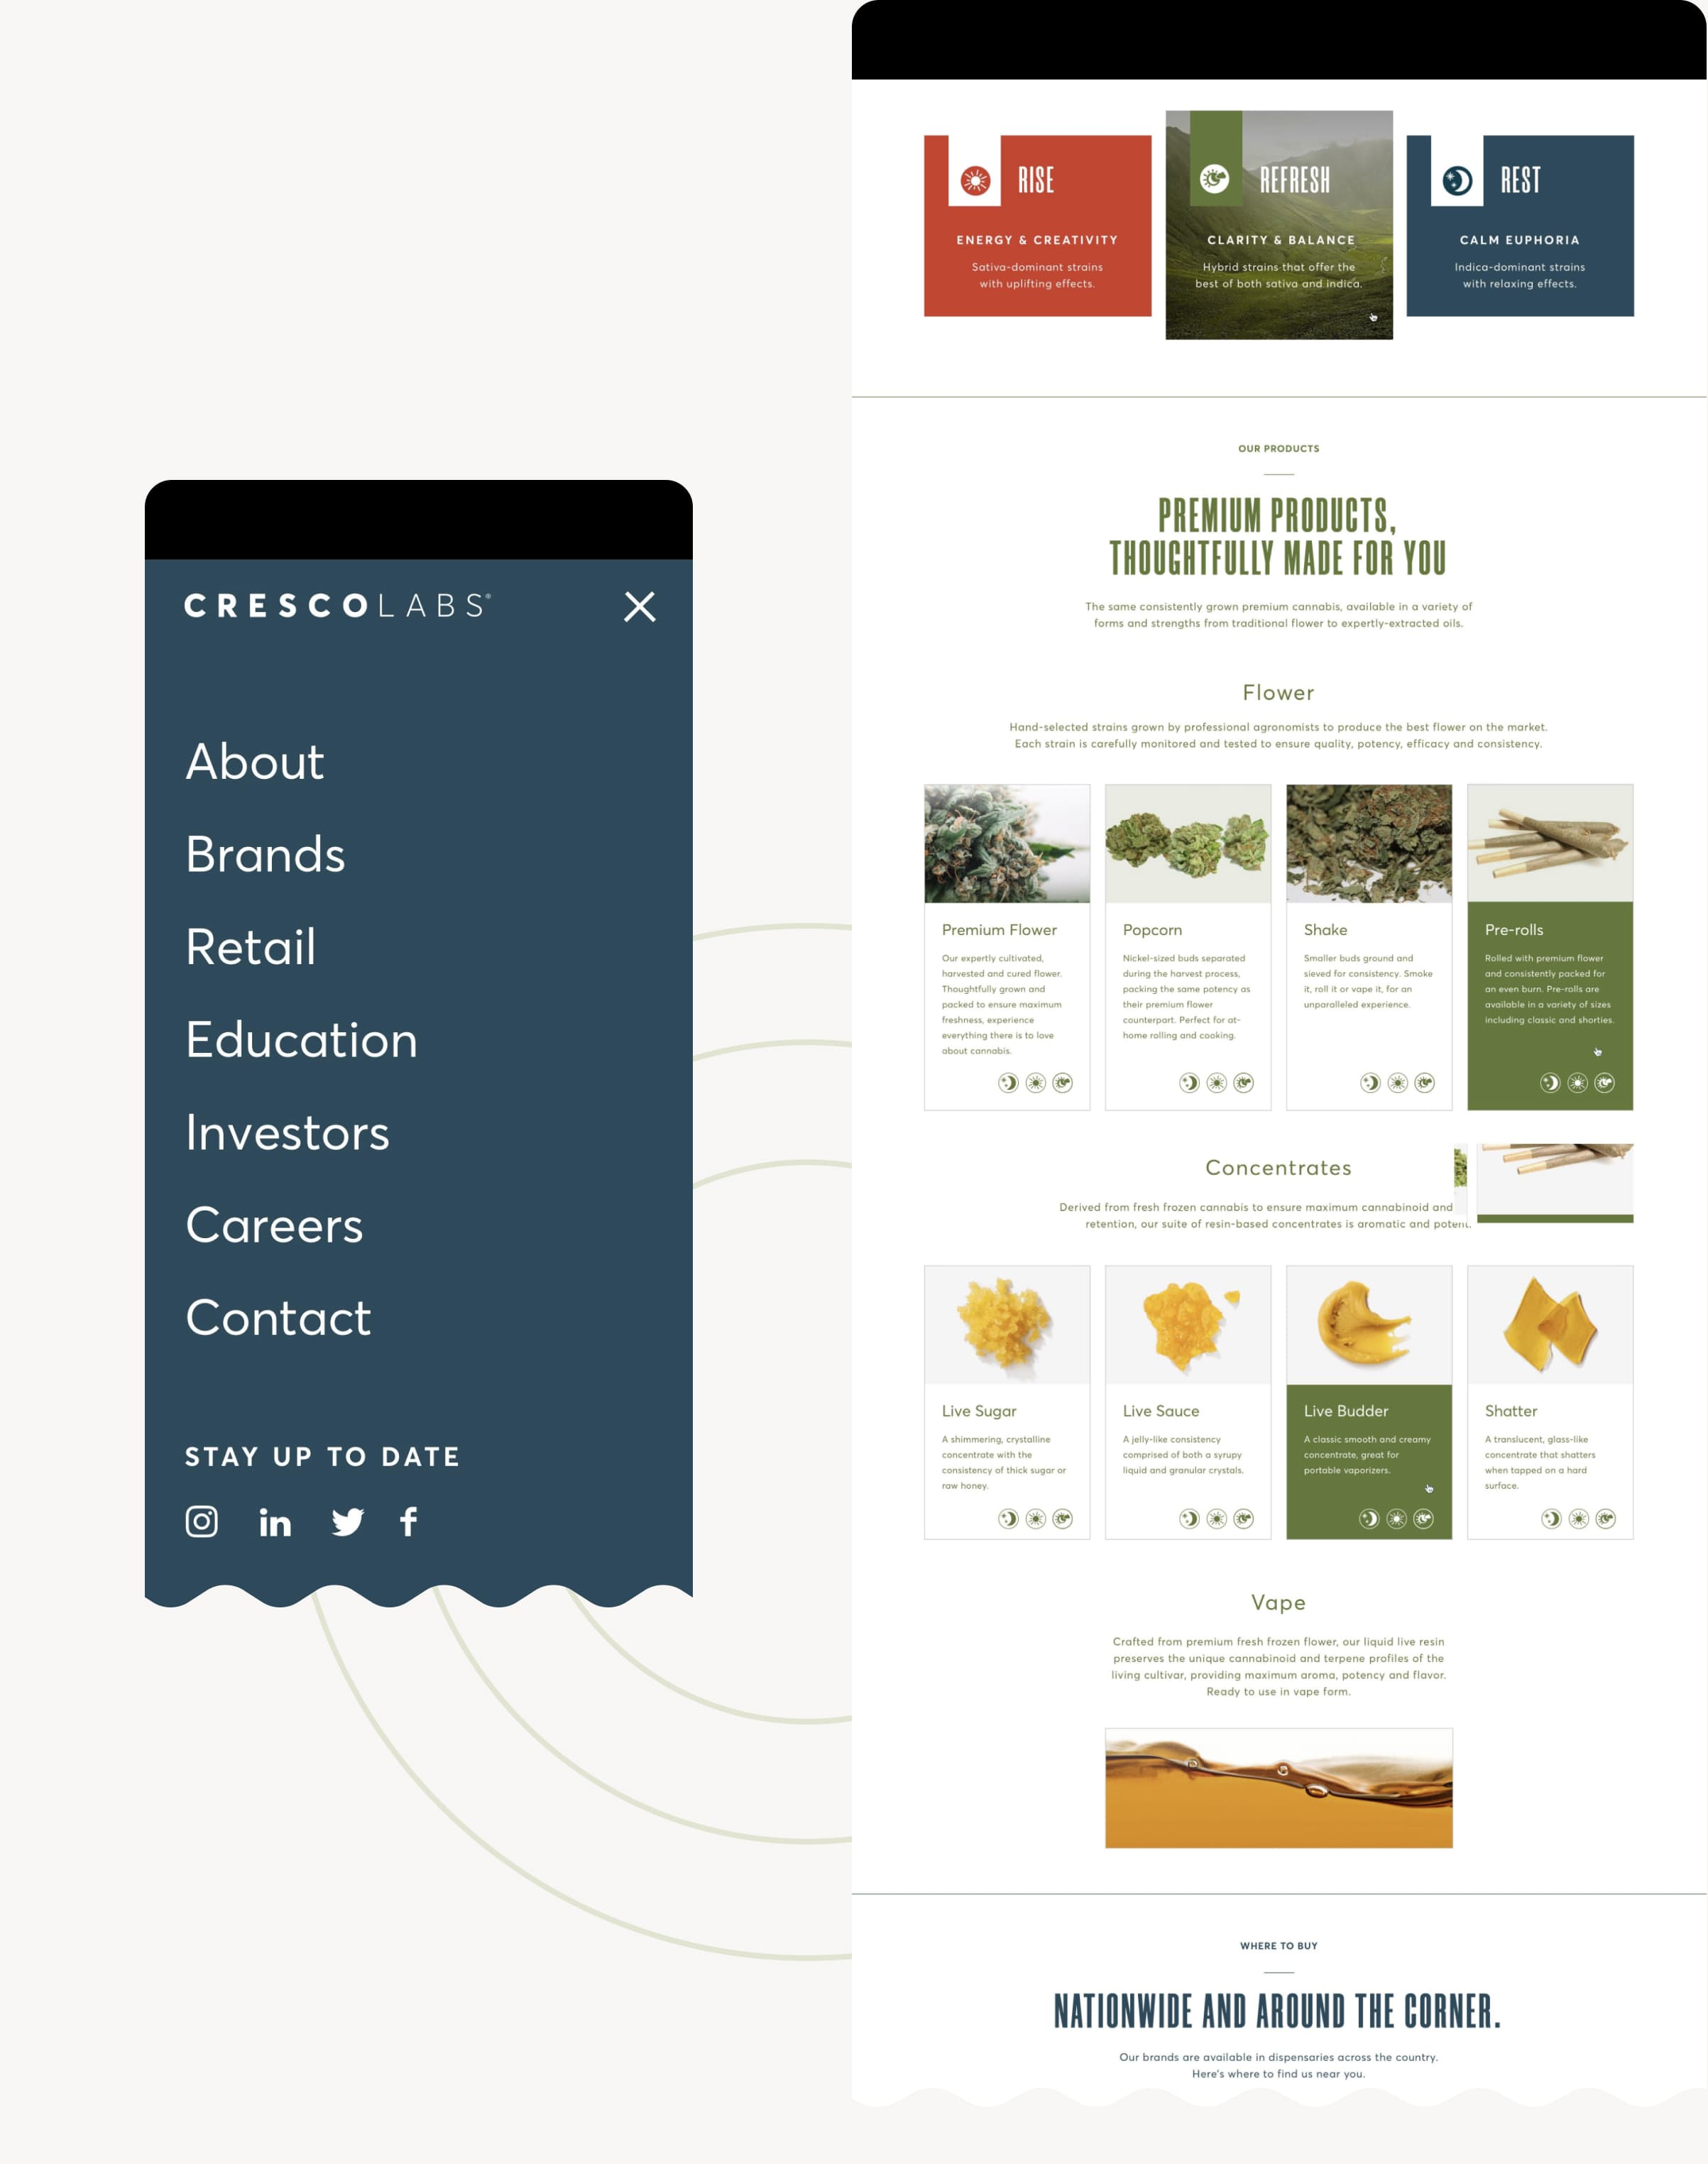 An image of the Cresco consumer cannabis brand website, including an image of the mobile website design.